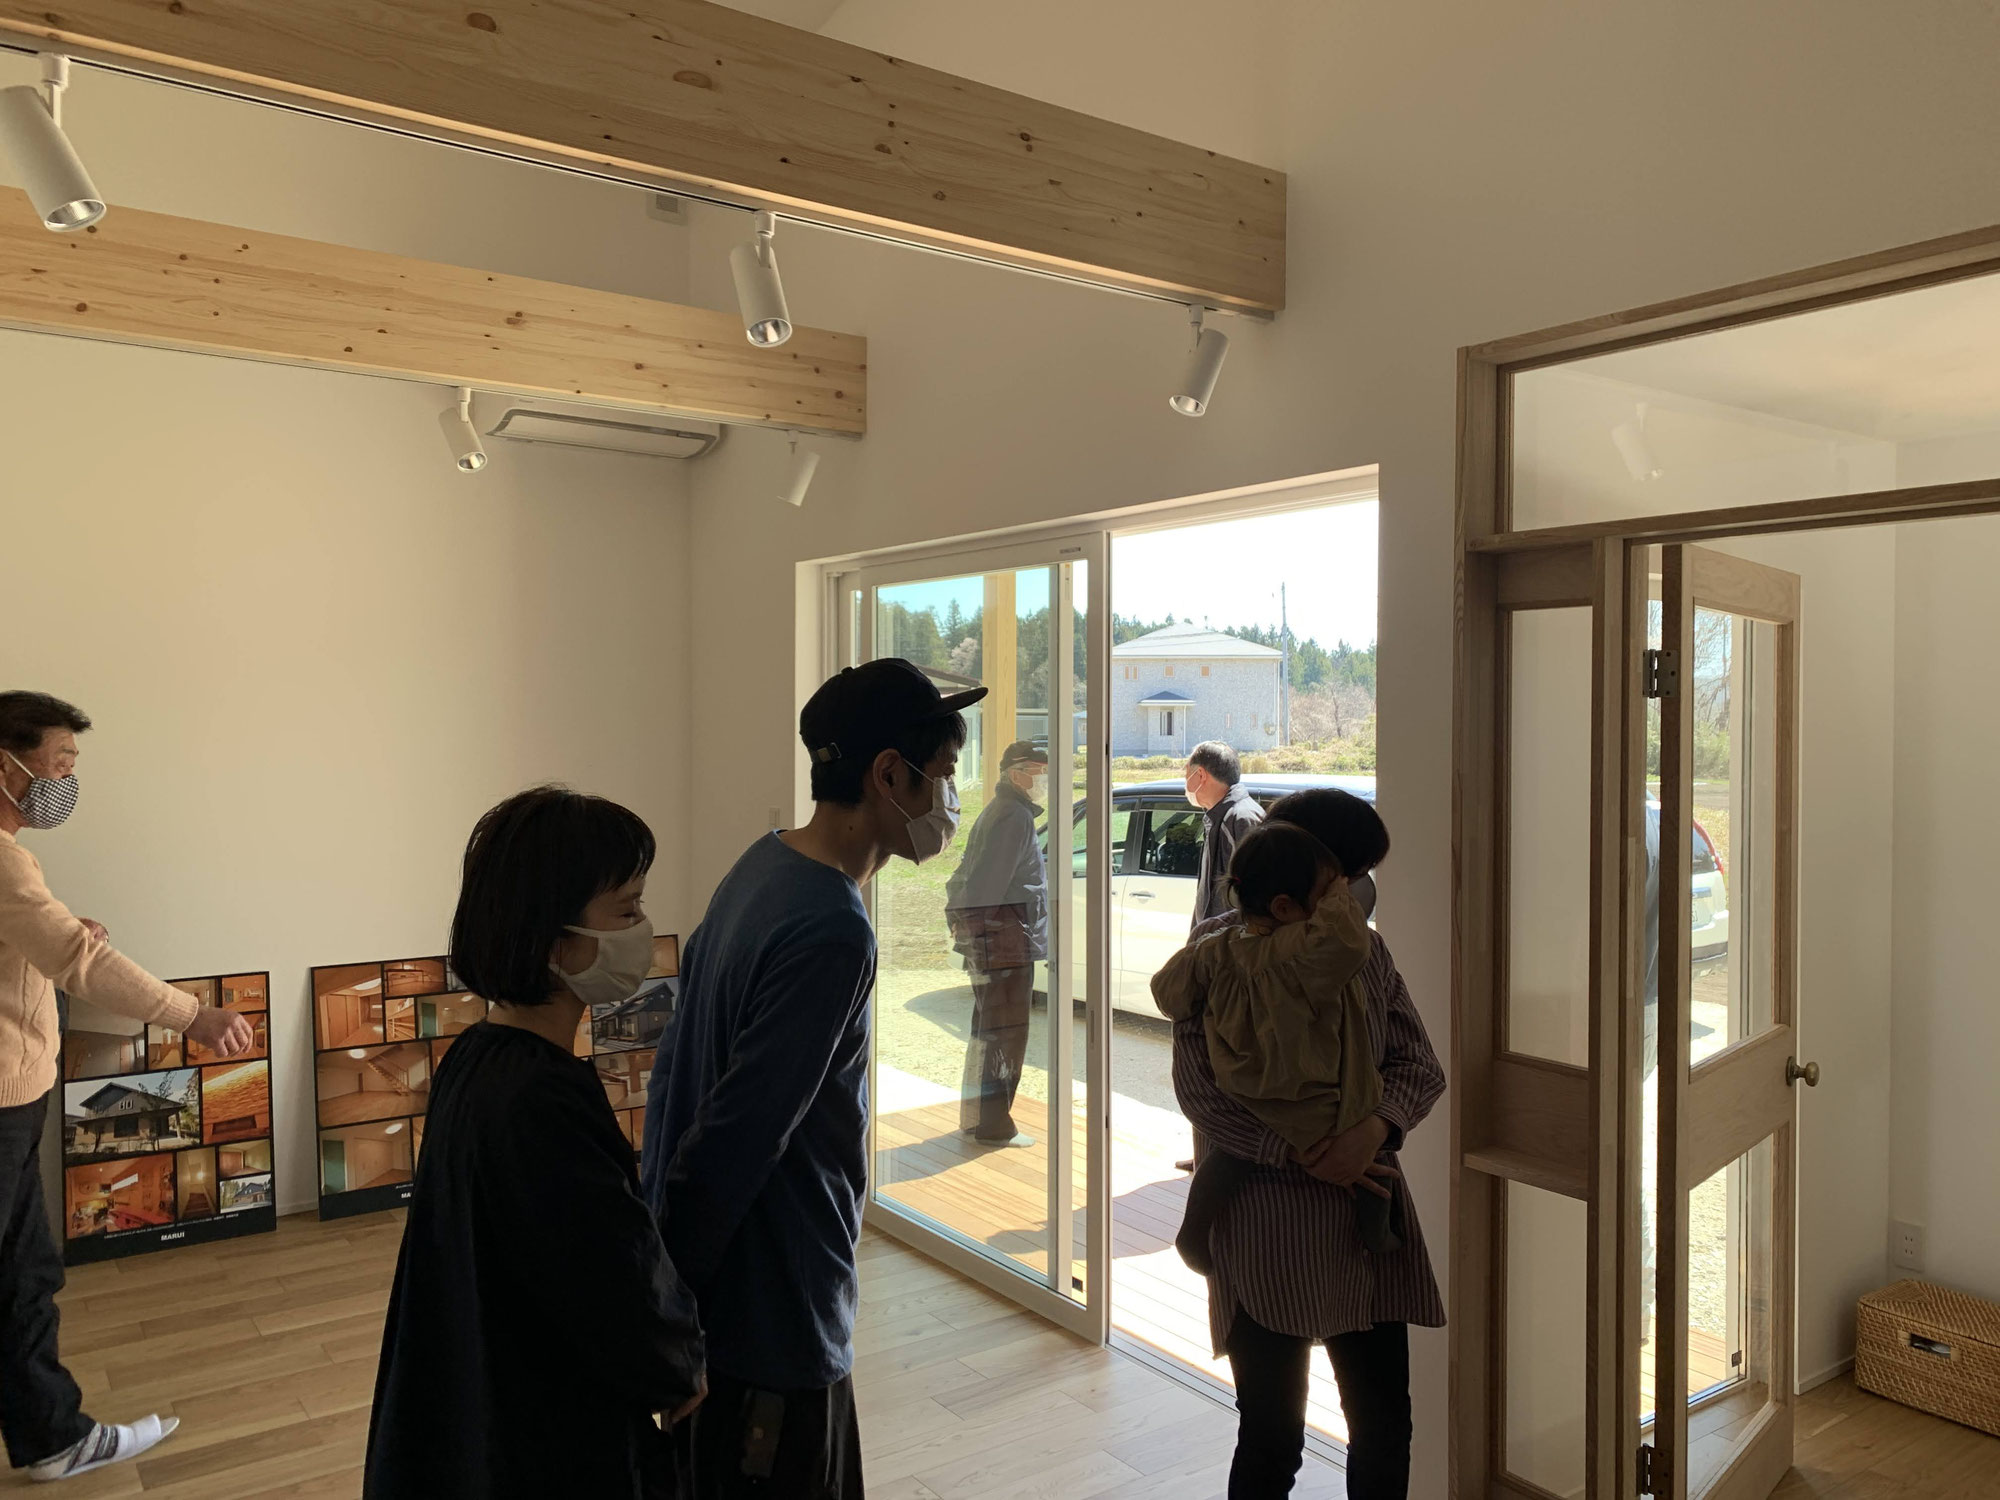 OPEN HOUSE ありがとうございました。